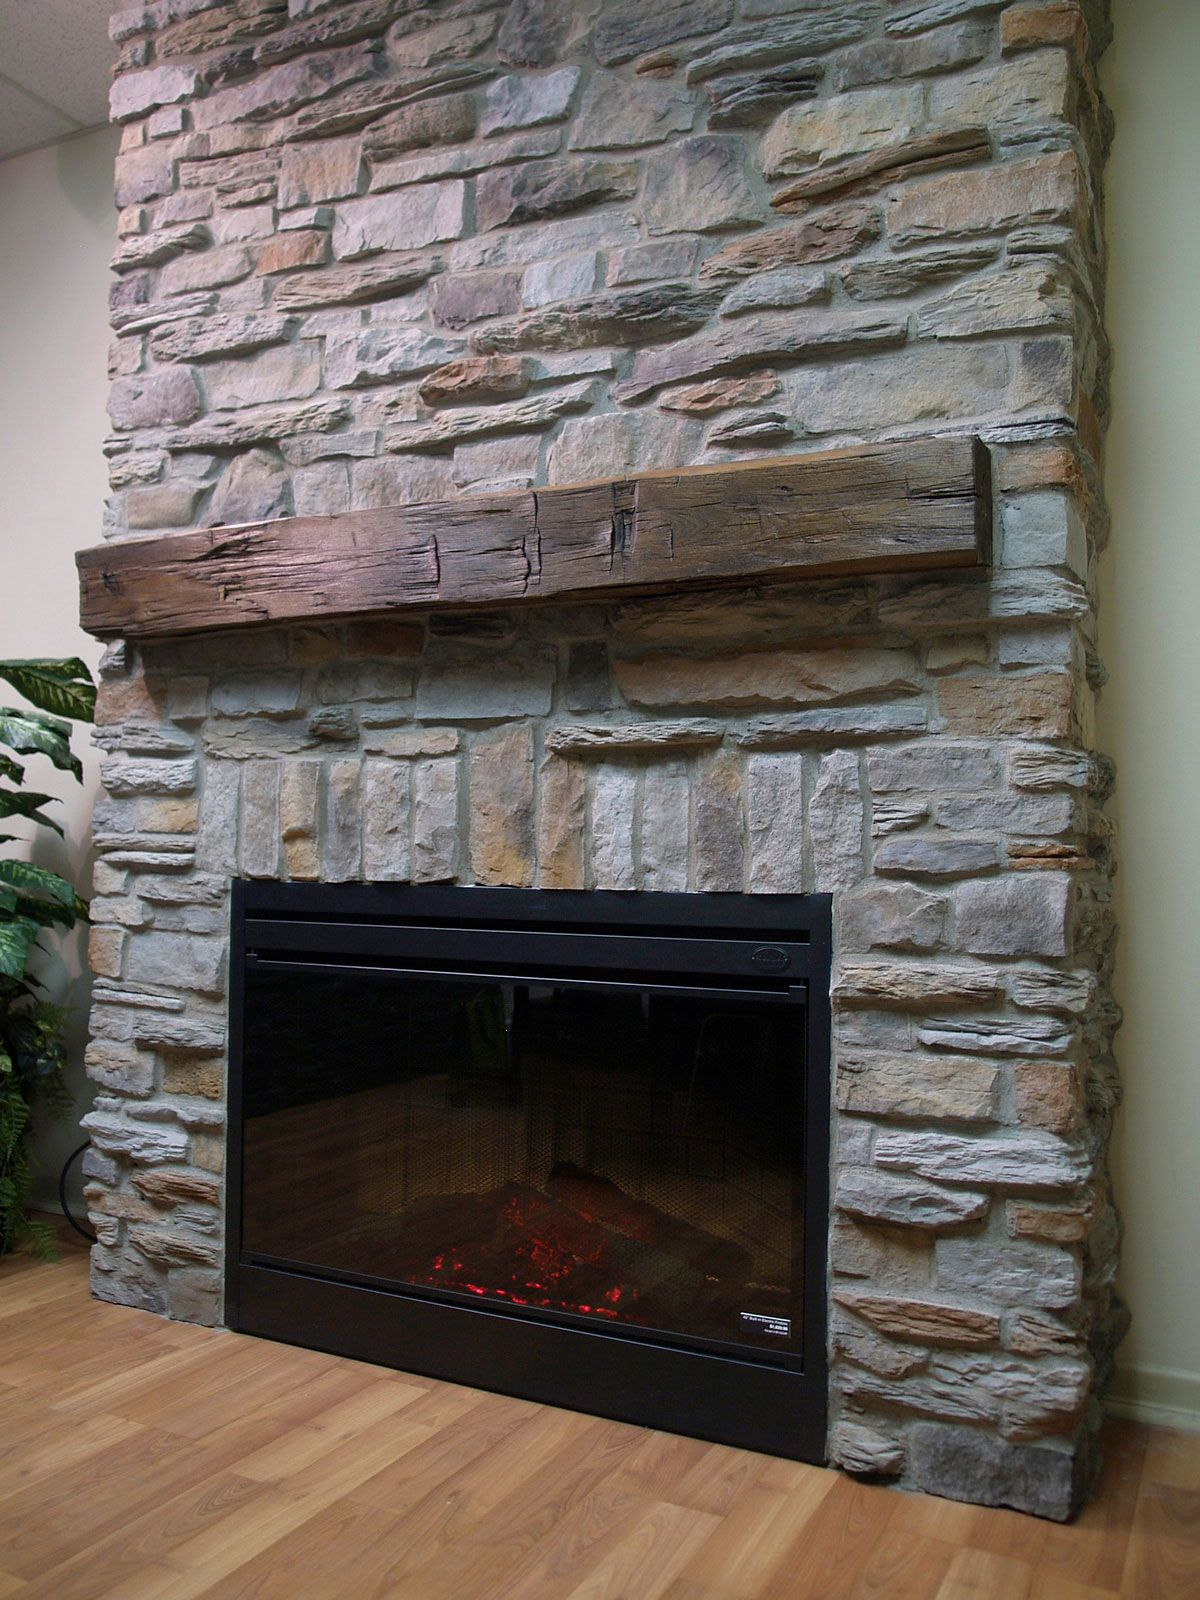 Stone Veneer Fireplace Instead Of Wood Mantle, Make A Rock Shelf